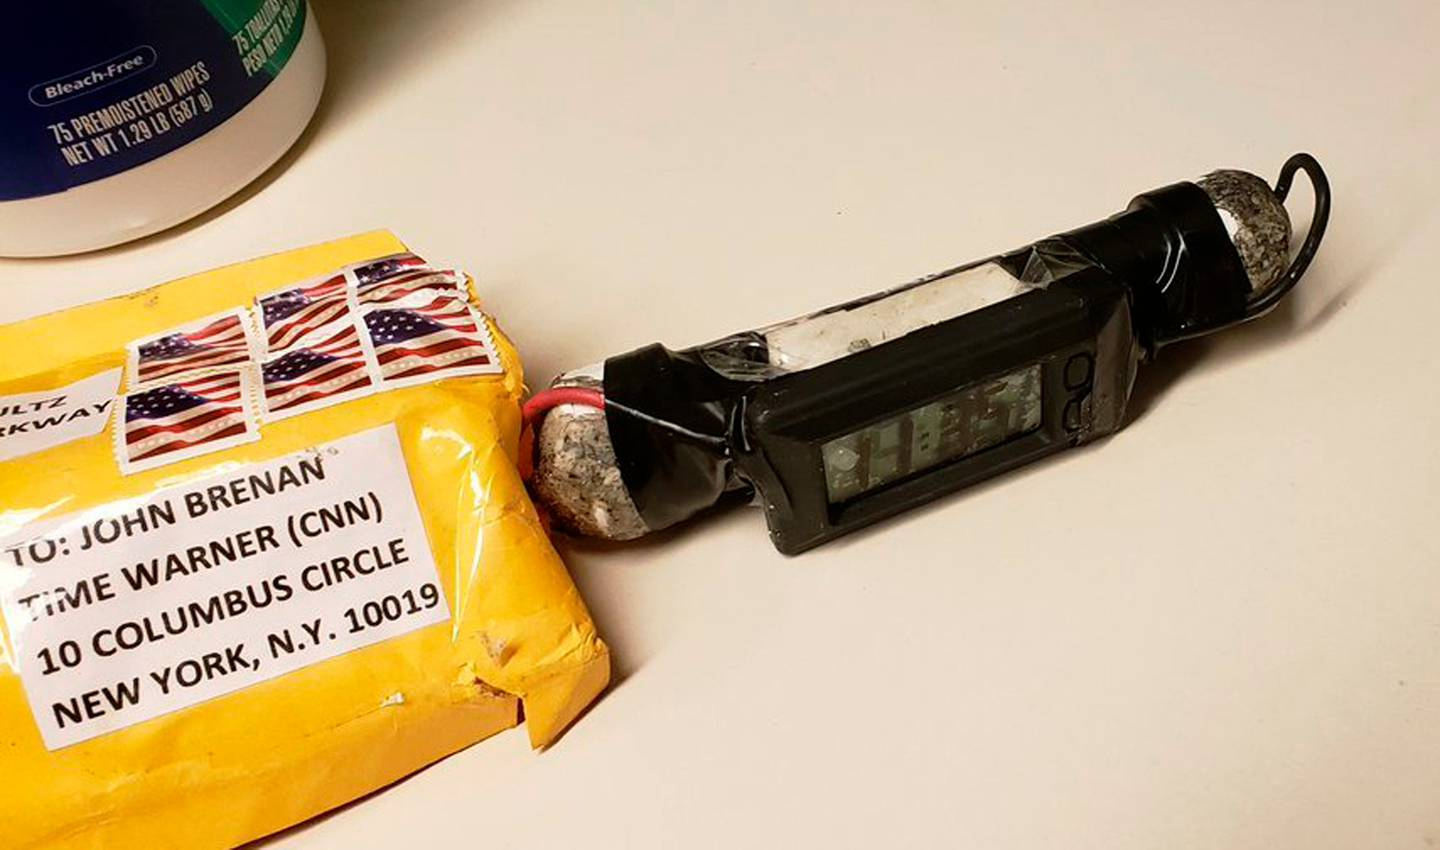 This explosive device was delivered to CNN's bureau in New York. — Photograph: Associated Press.